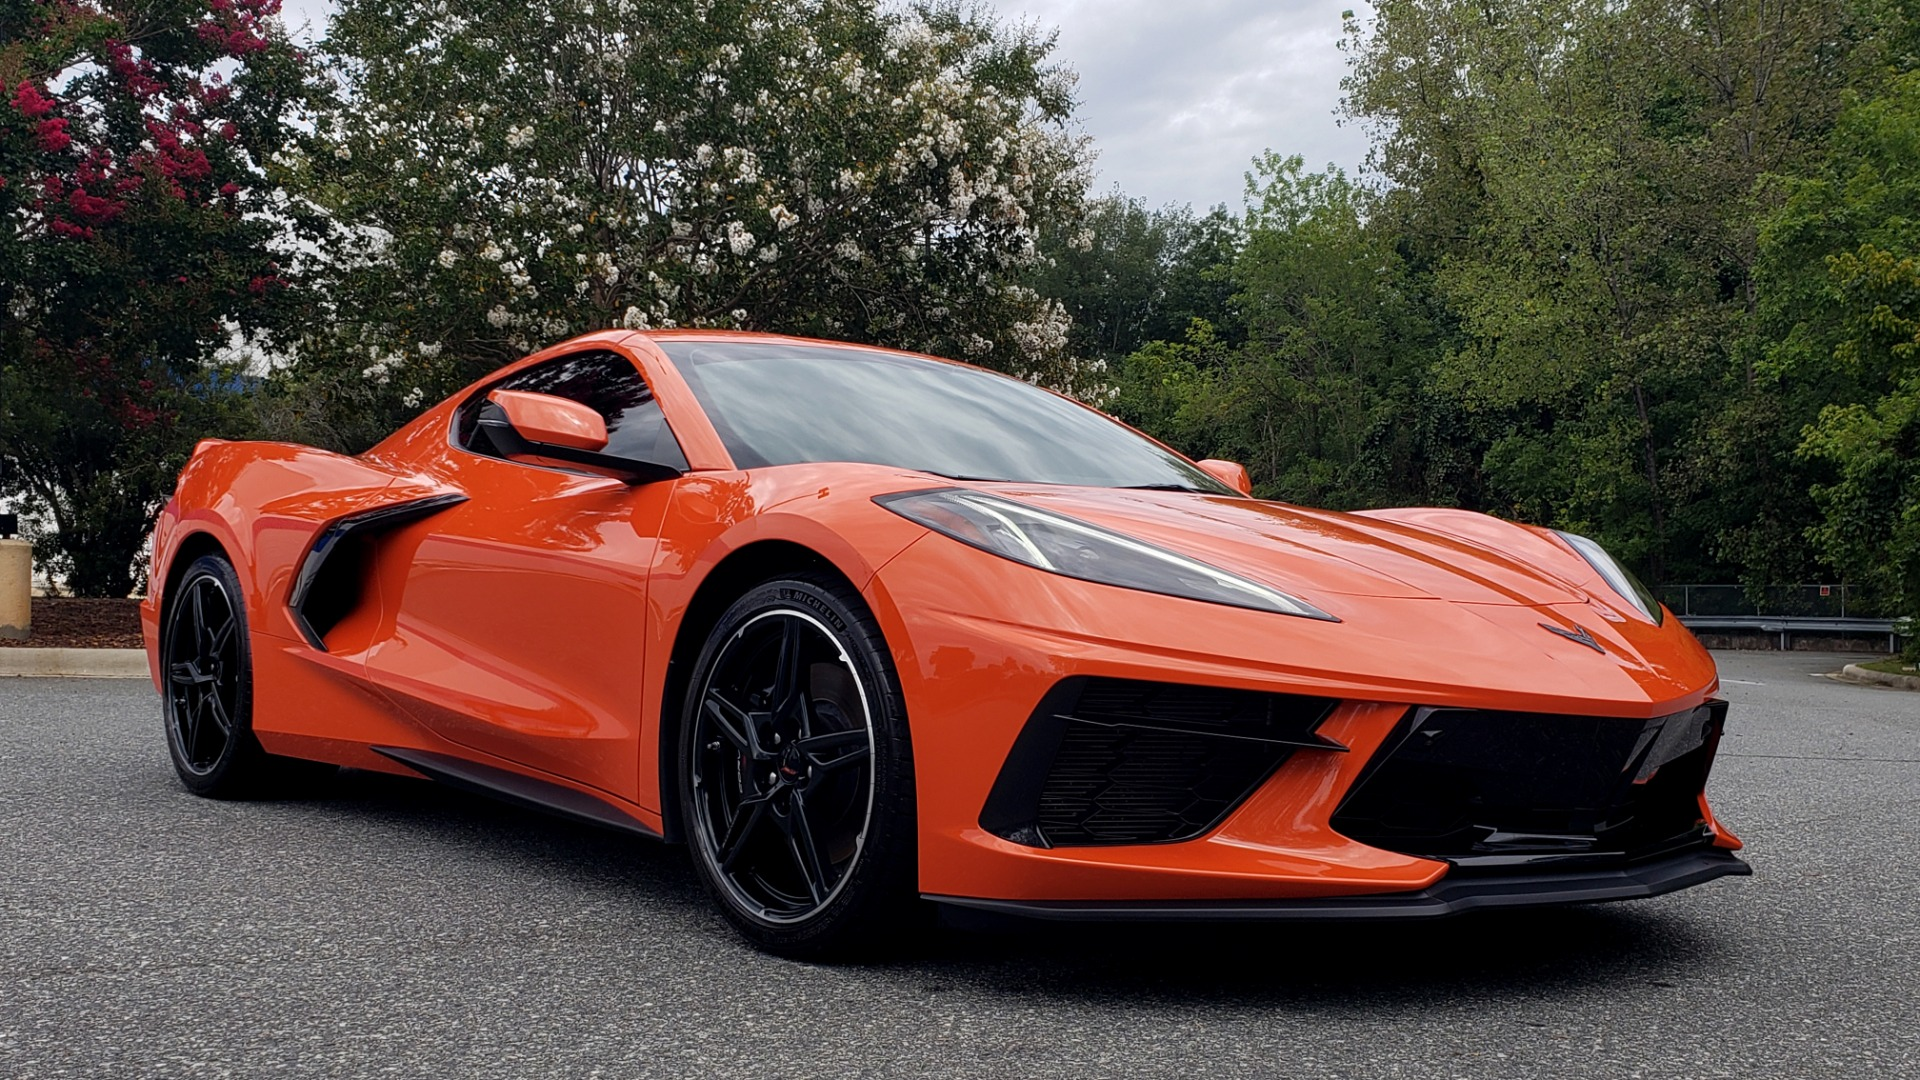 Used 2020 Chevrolet CORVETTE C8 STINGRAY 2LT / 6.2L V8 / 8-SPD AUTO / NAV / BOSE / REARVIEW / DATA RECOR for sale Sold at Formula Imports in Charlotte NC 28227 12